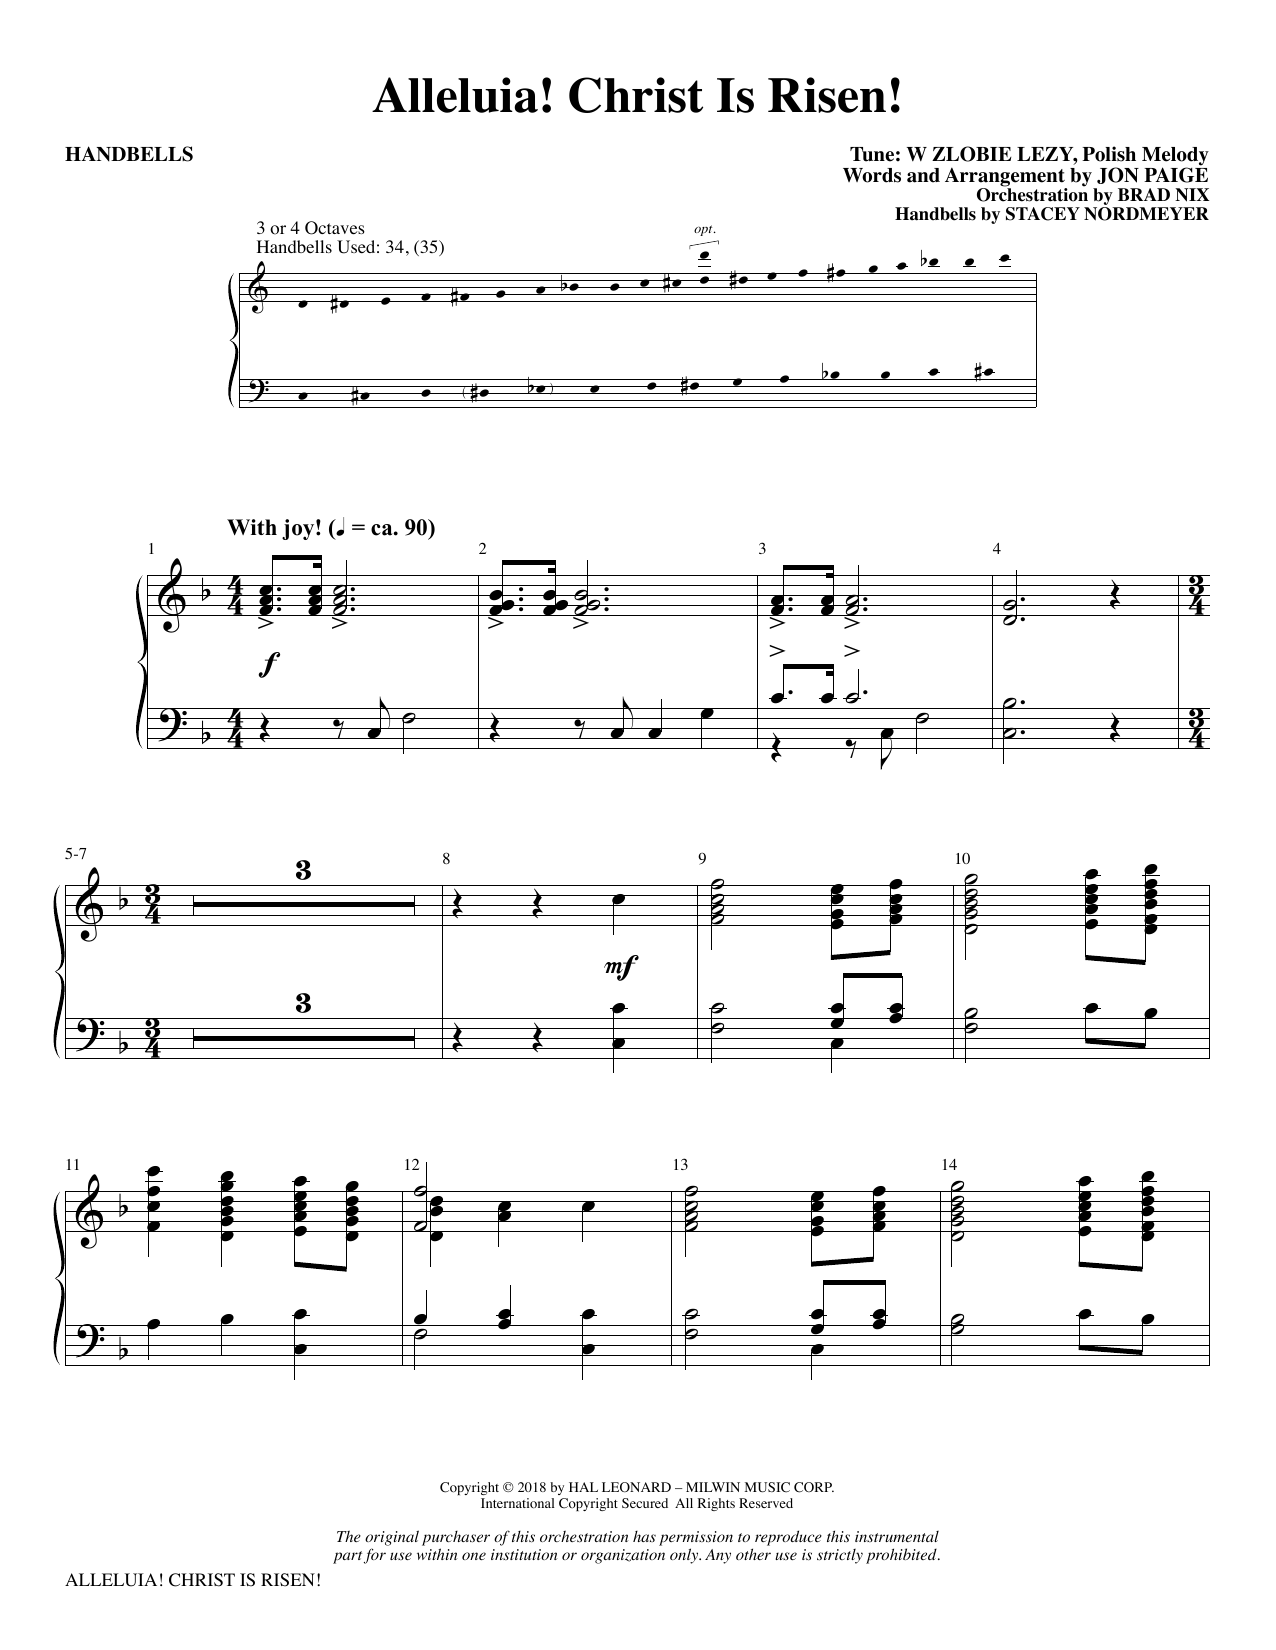 Jon Paige Alleluia! Christ Is Risen! - Handbells sheet music notes and chords